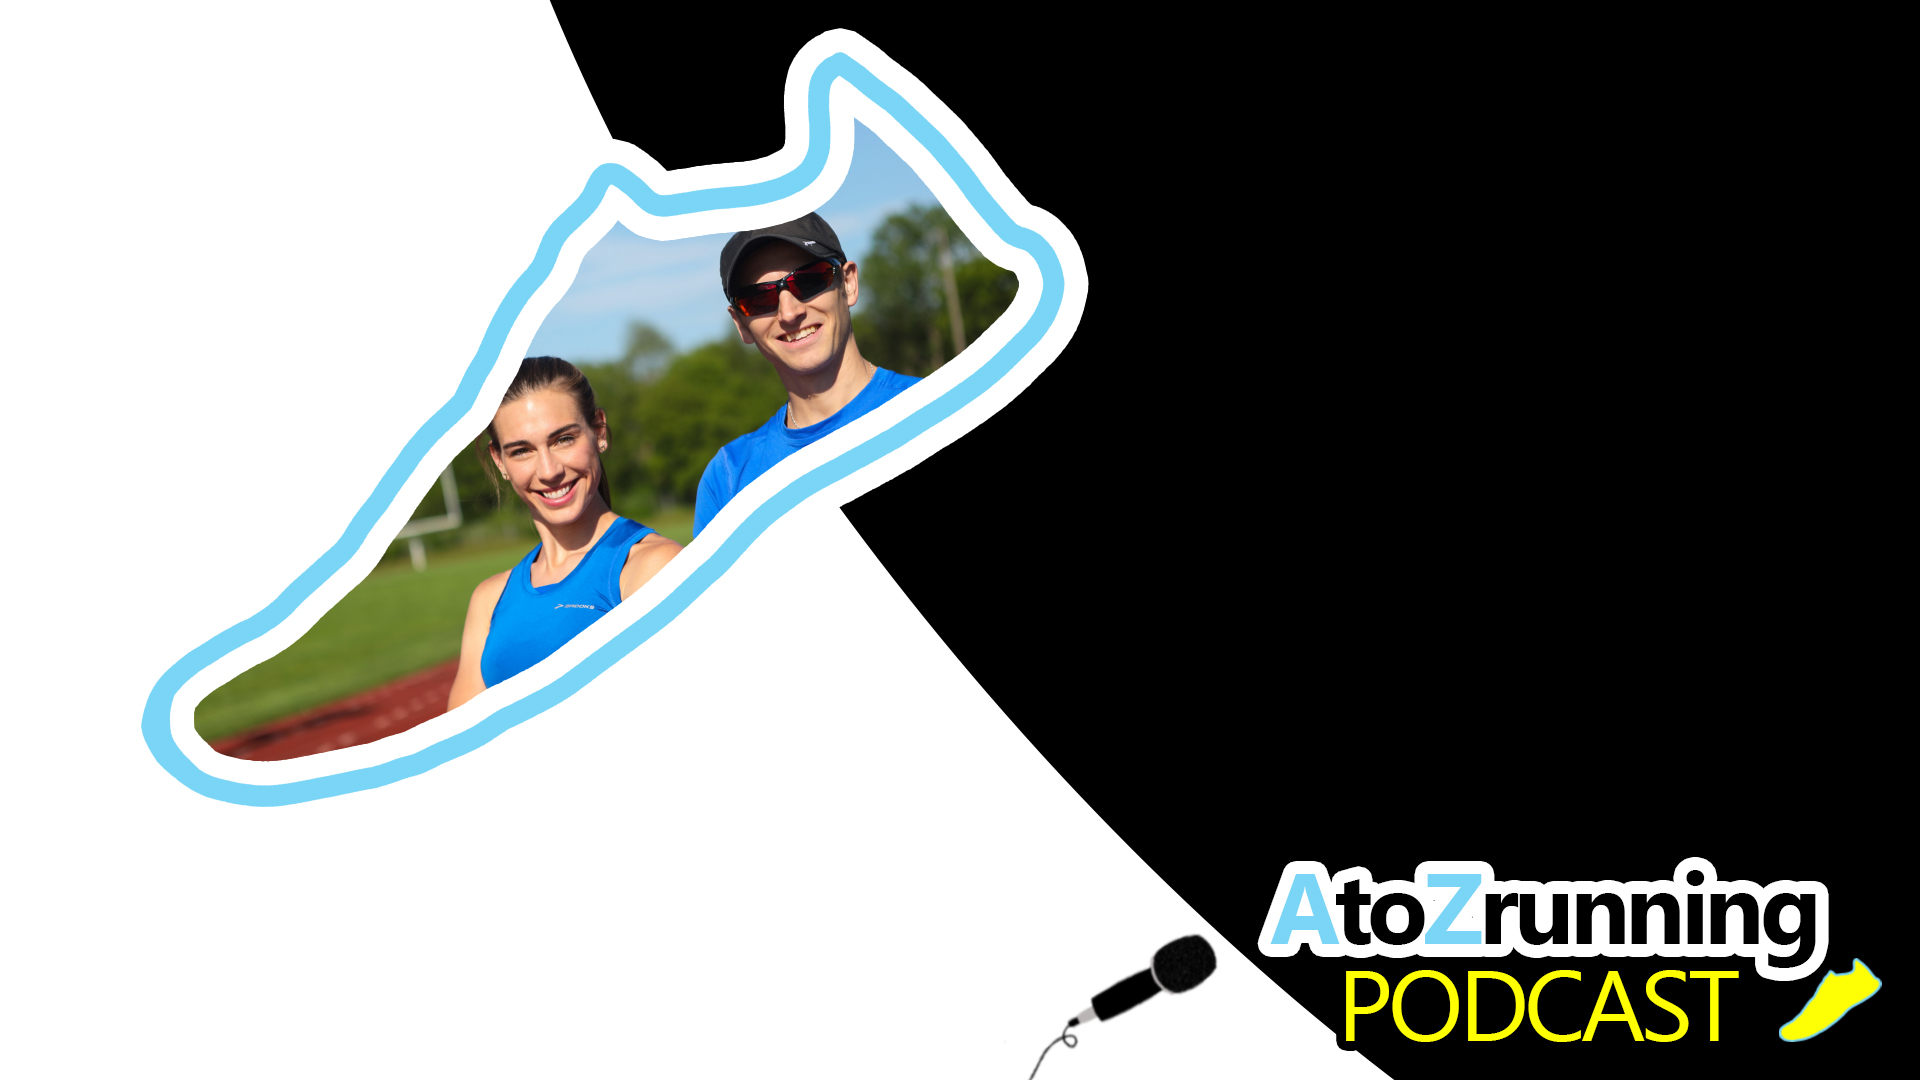 AtoZrunning Podcast- Running Podcast